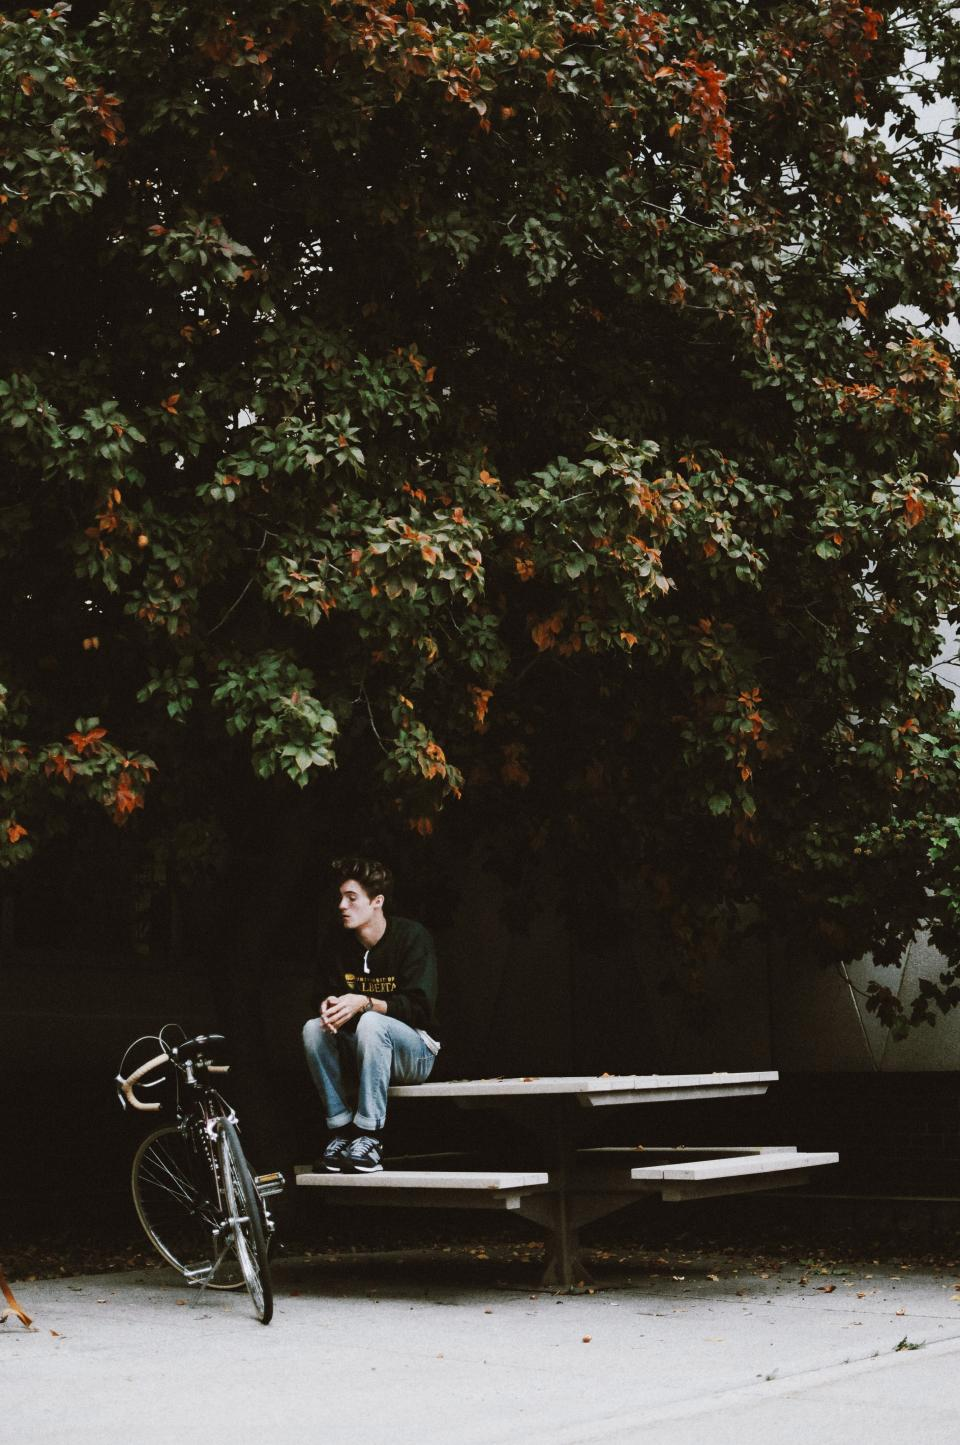 tree plant outside table bench bike bicycle people guy alone sad thinking sitting